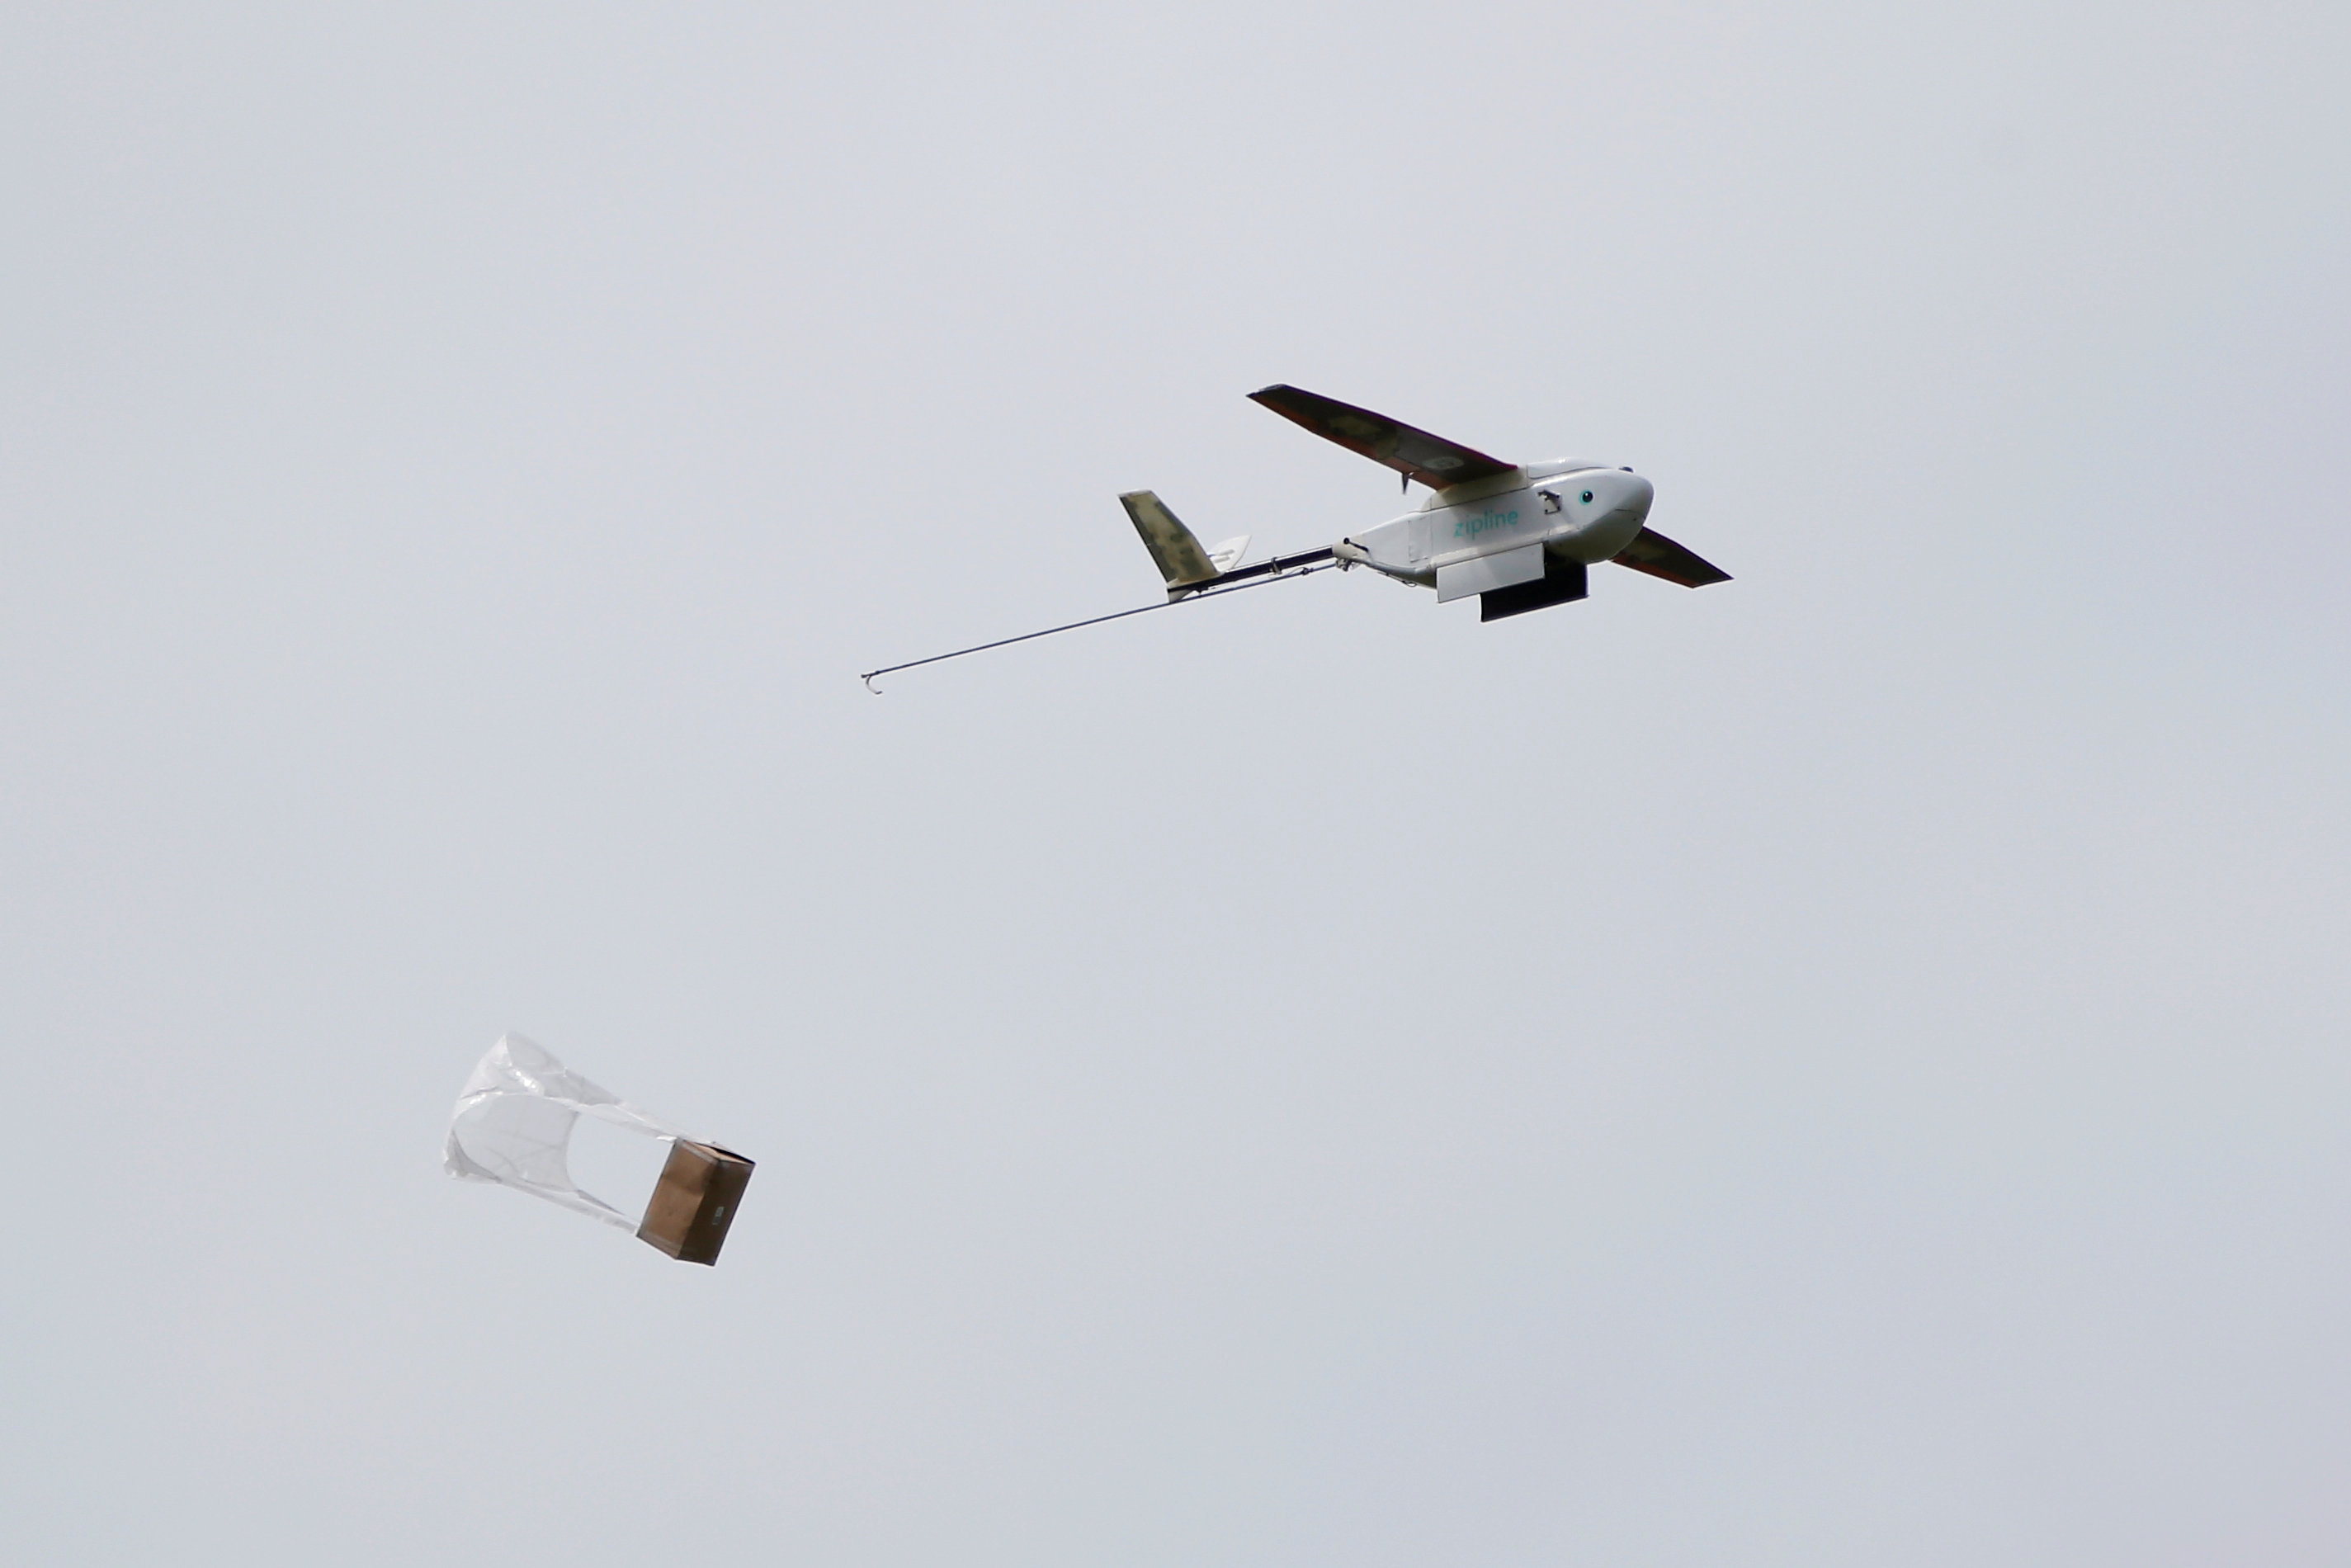 A Zipline delivery drone releases its payload midair during a flight demonstration at an undisclosed location in the San Francisco Bay